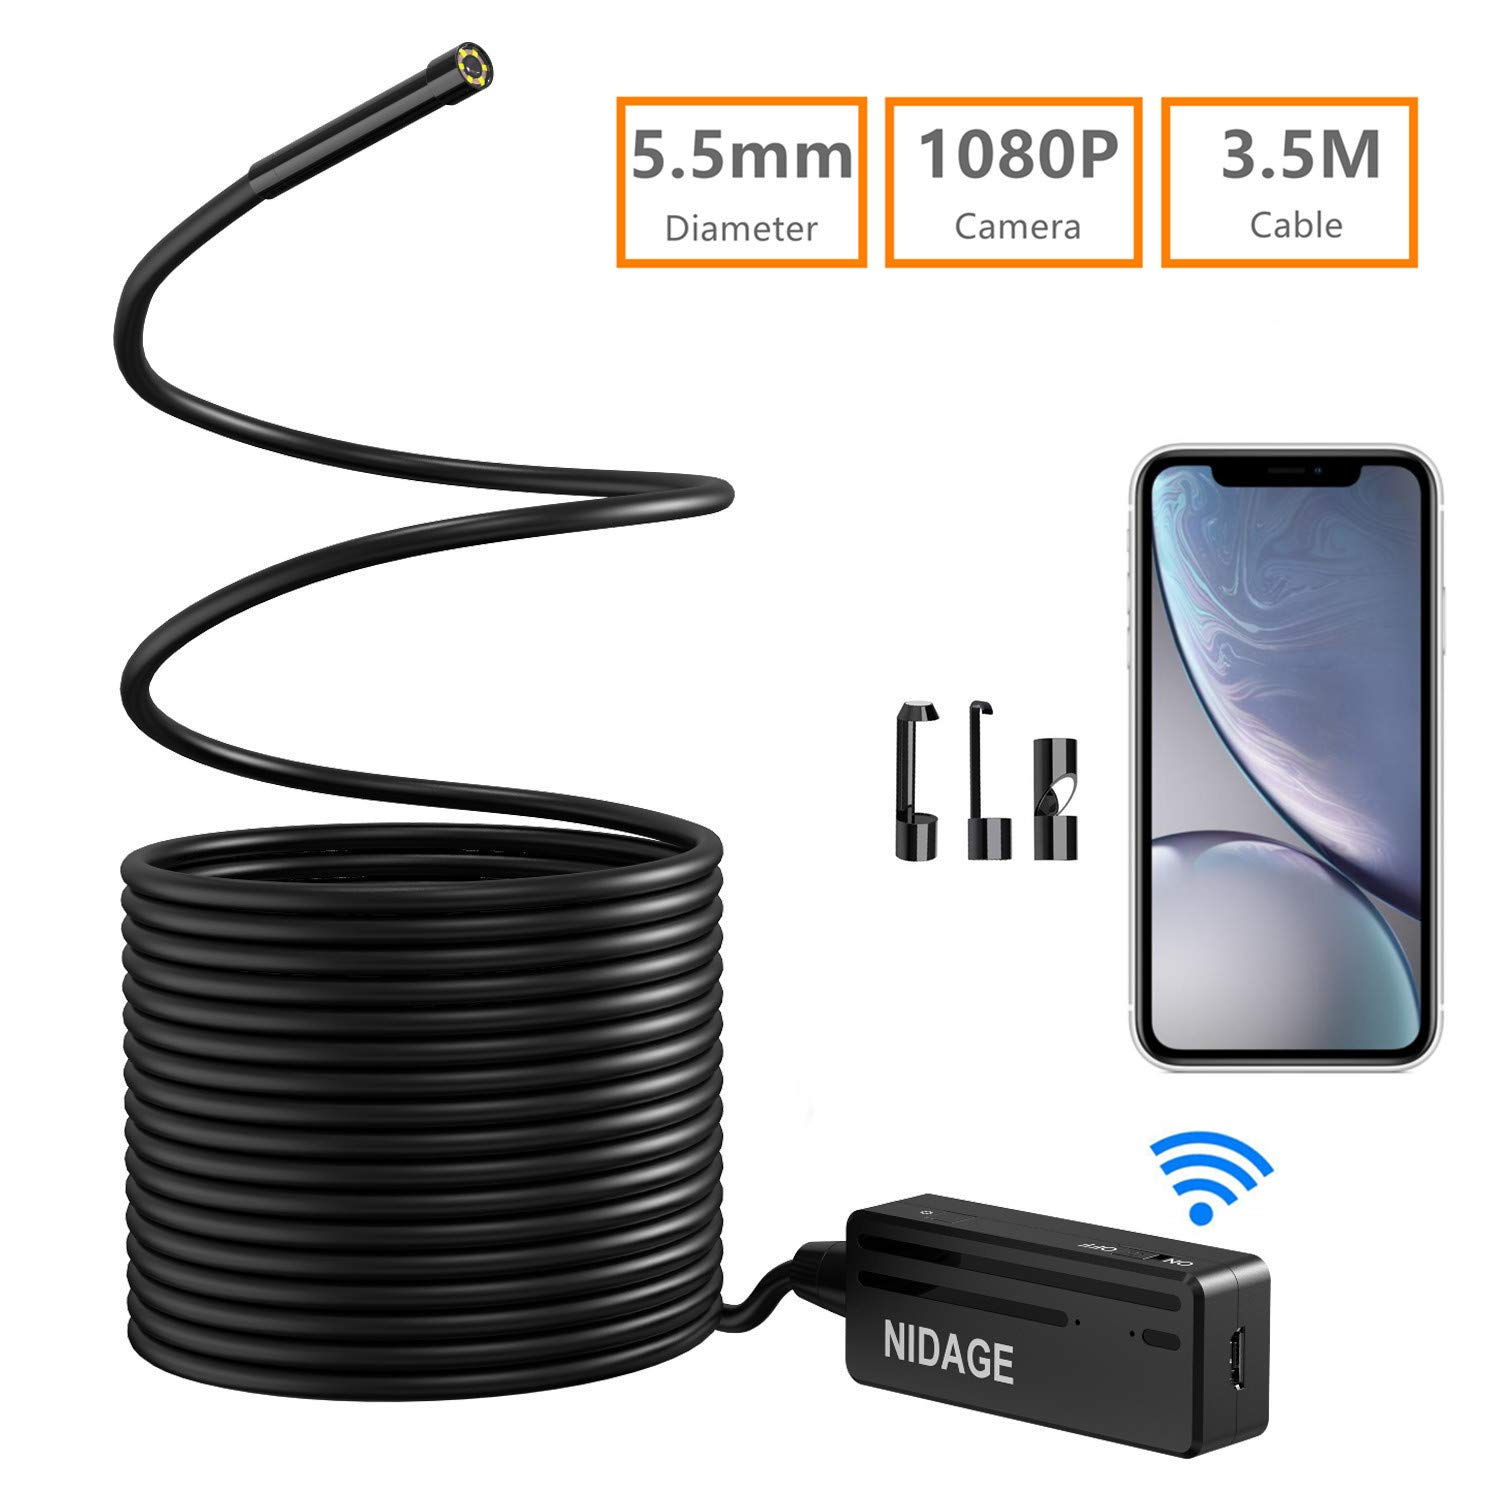 Wireless Endoscope, NIDAGE 5.5mm 2MP WiFi Borescope 1080P HD Semi-Rigid Snake Camera for iPhone Android, Tablet, Motor Engine Sewer Pipe Vehicle Inspection Camera(11.5FT)